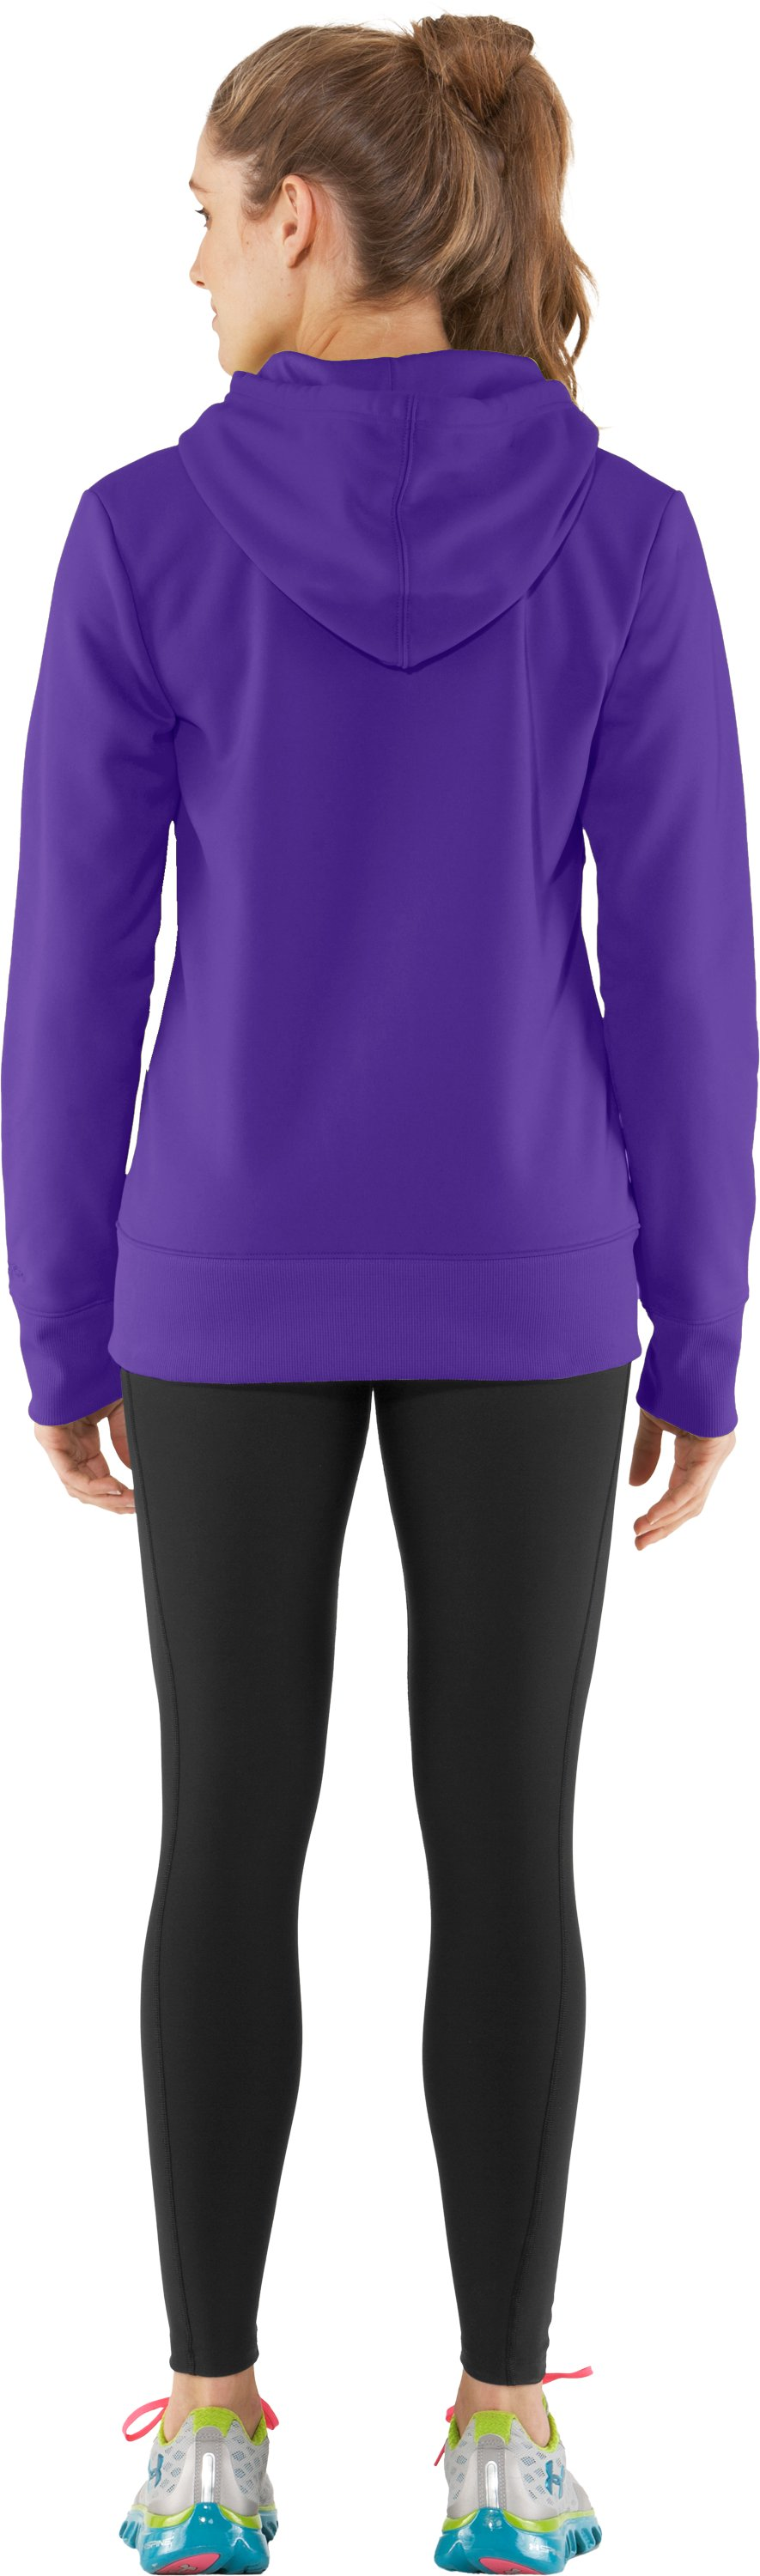 Women's Armour® Fleece Storm Full Zip Hoodie, Pluto, Back